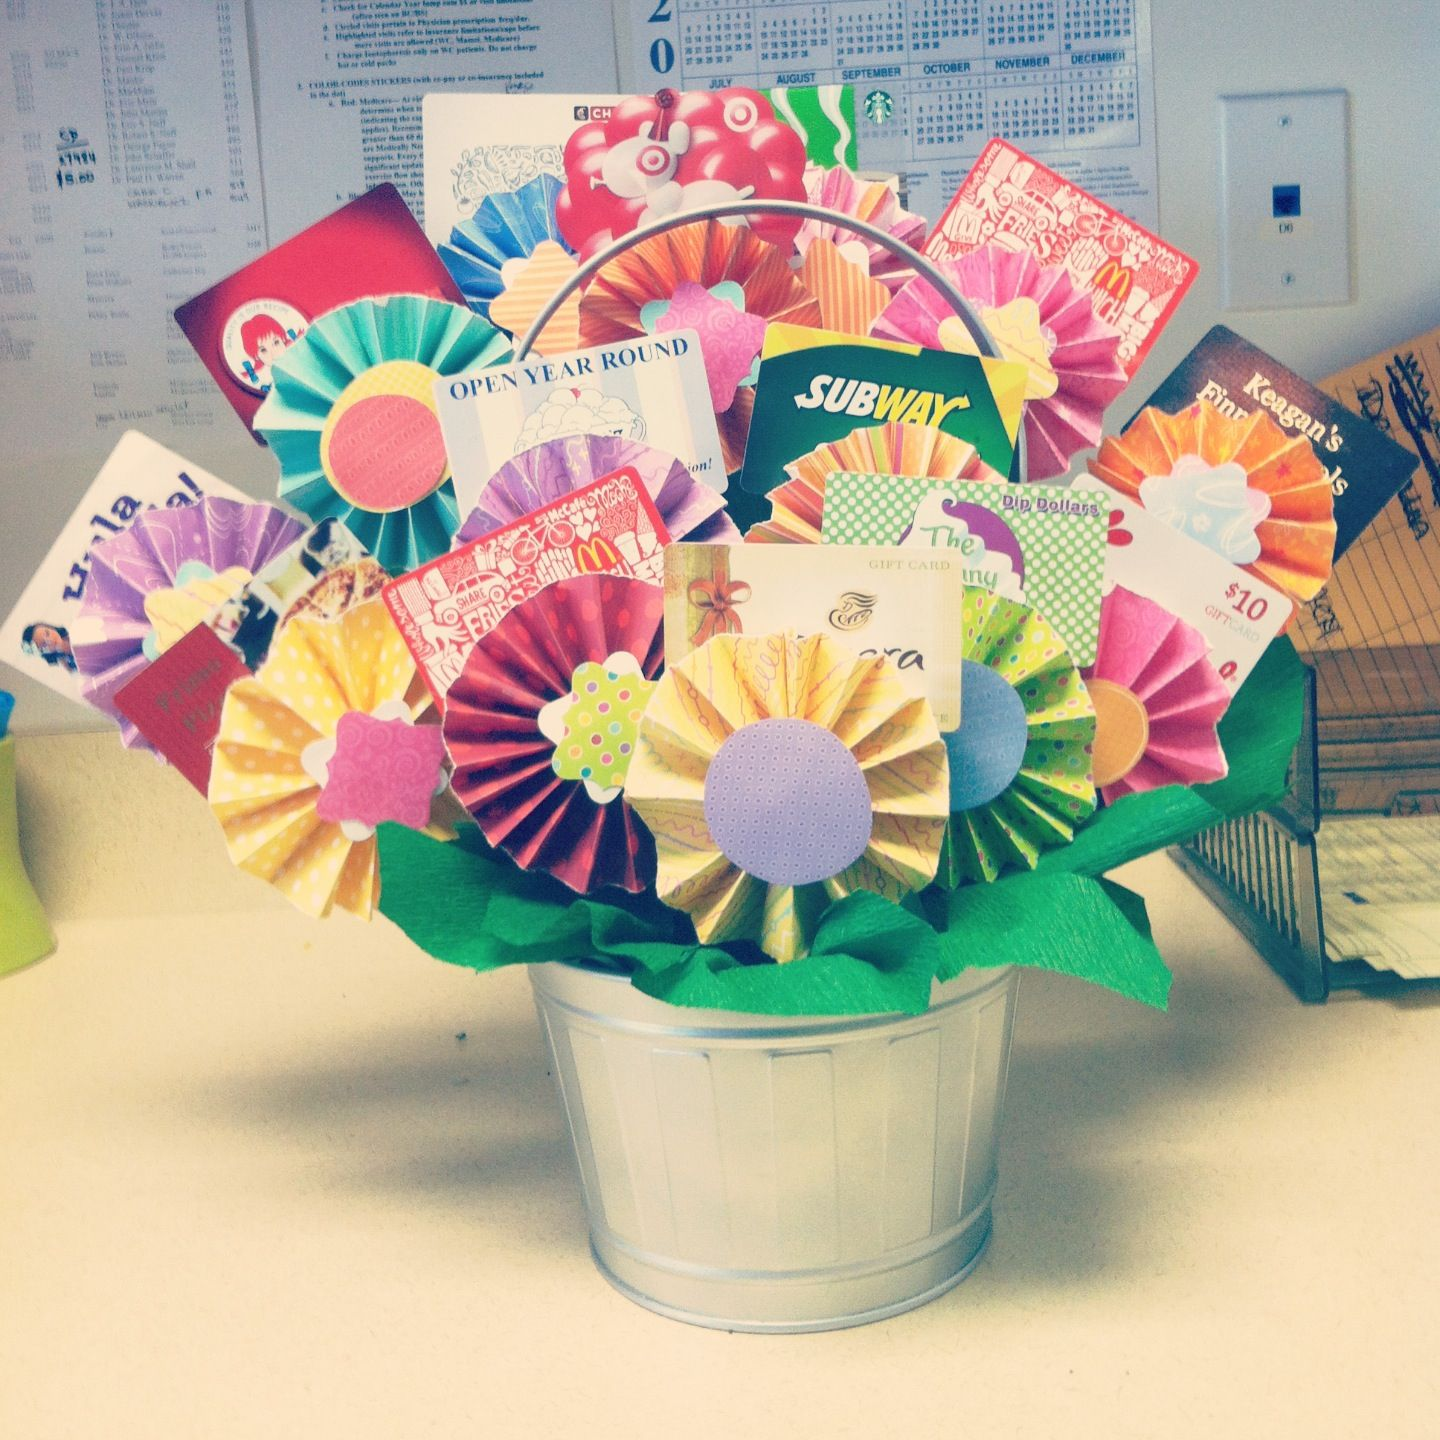 Gift card tree ideas pinterest - No Link Idea For Gift Card Basket